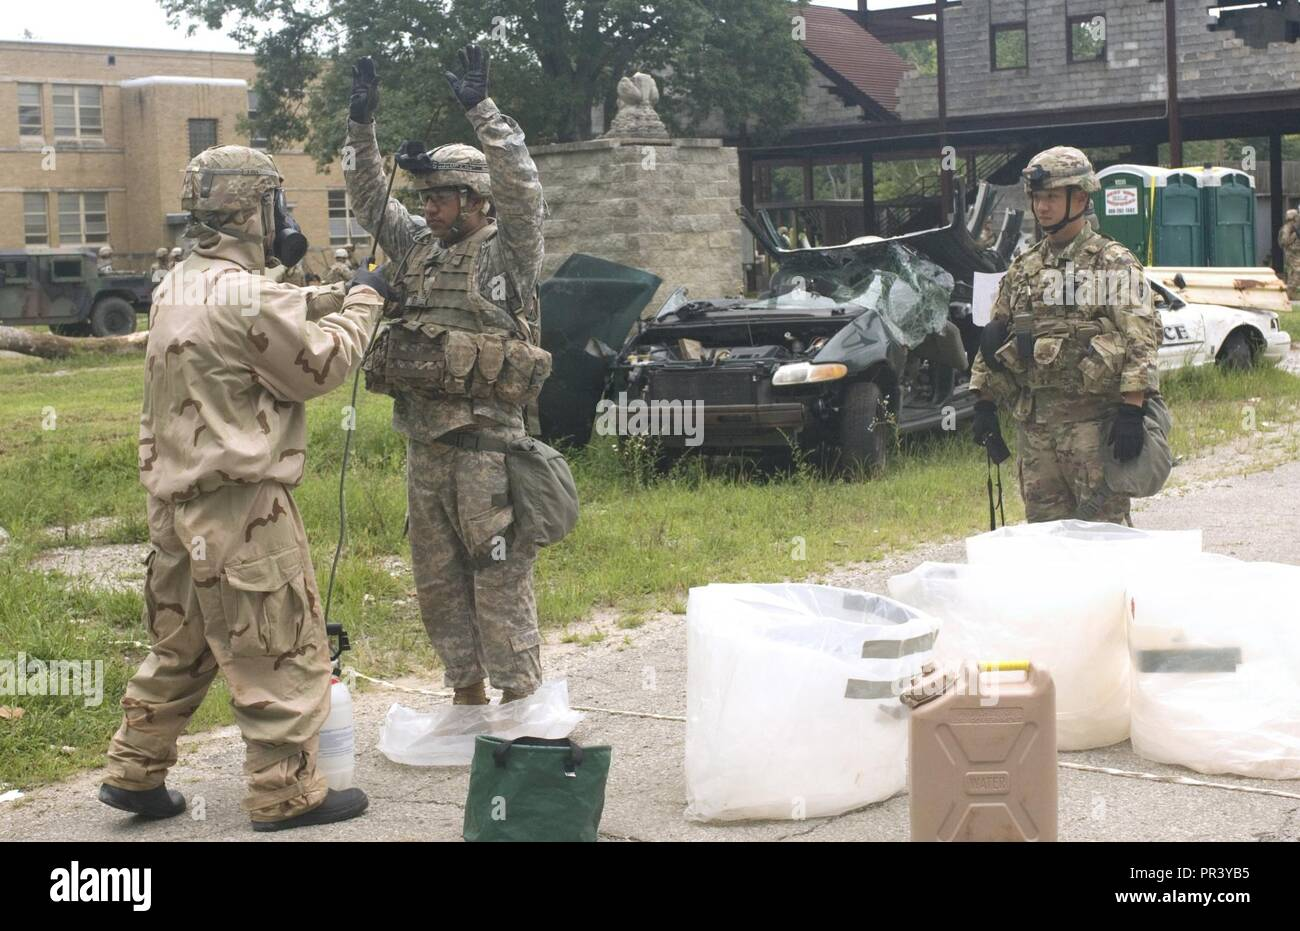 US Army Soldiers Assigned To The 65th Brigade Engineer Battalion BEB 2nd Combat Team 25th Infantry Division Simulate Decontamination